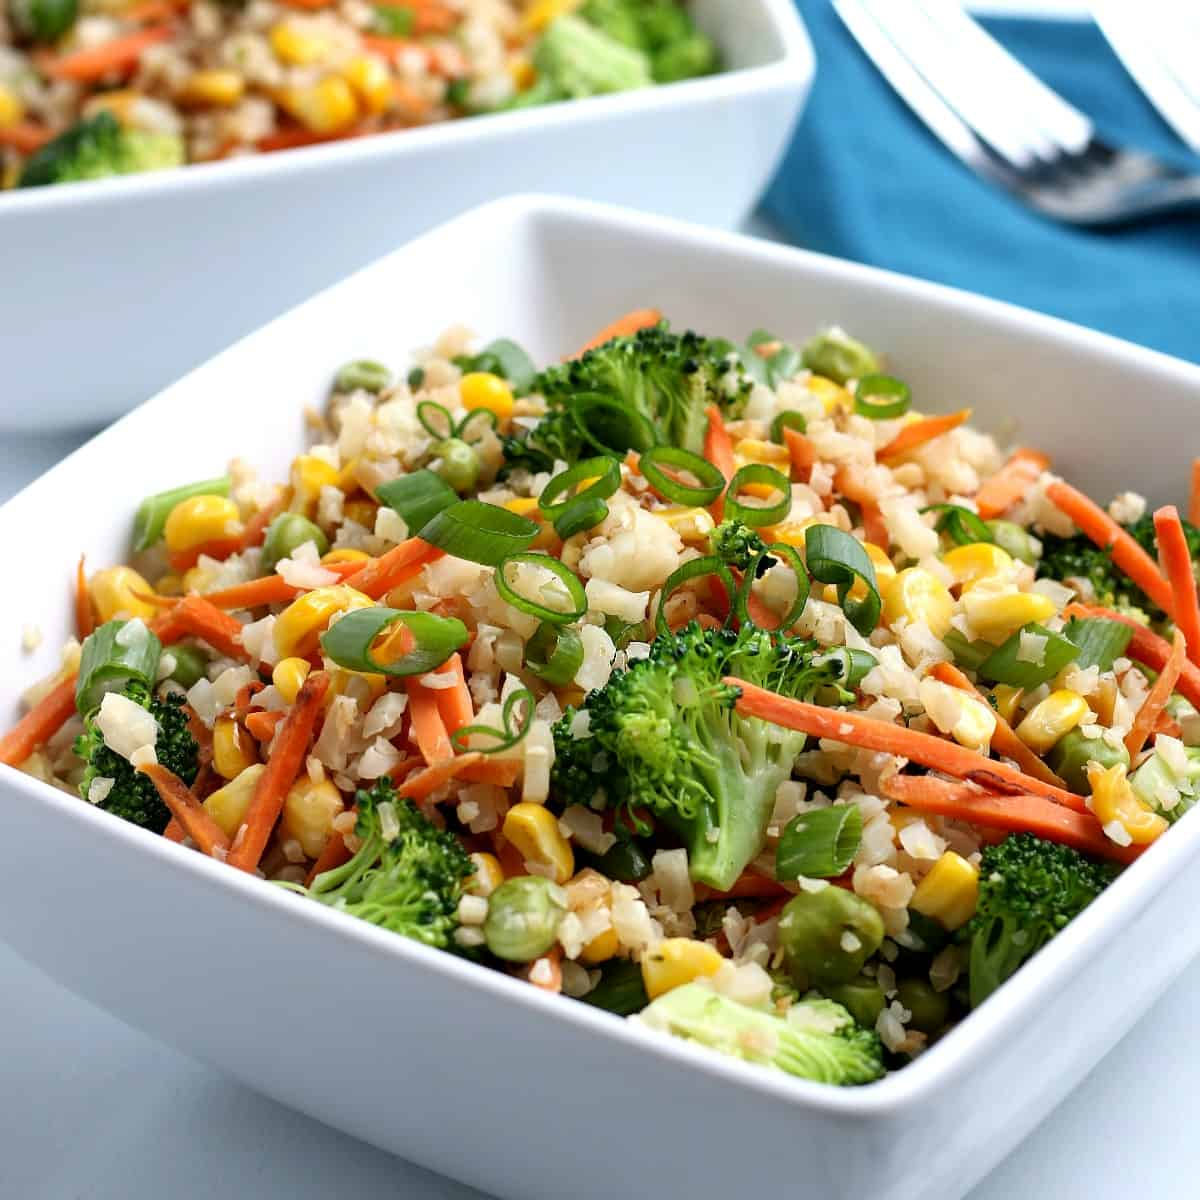 Square white bowl fulled with colorful Cauliflower Rice Stir Fry.